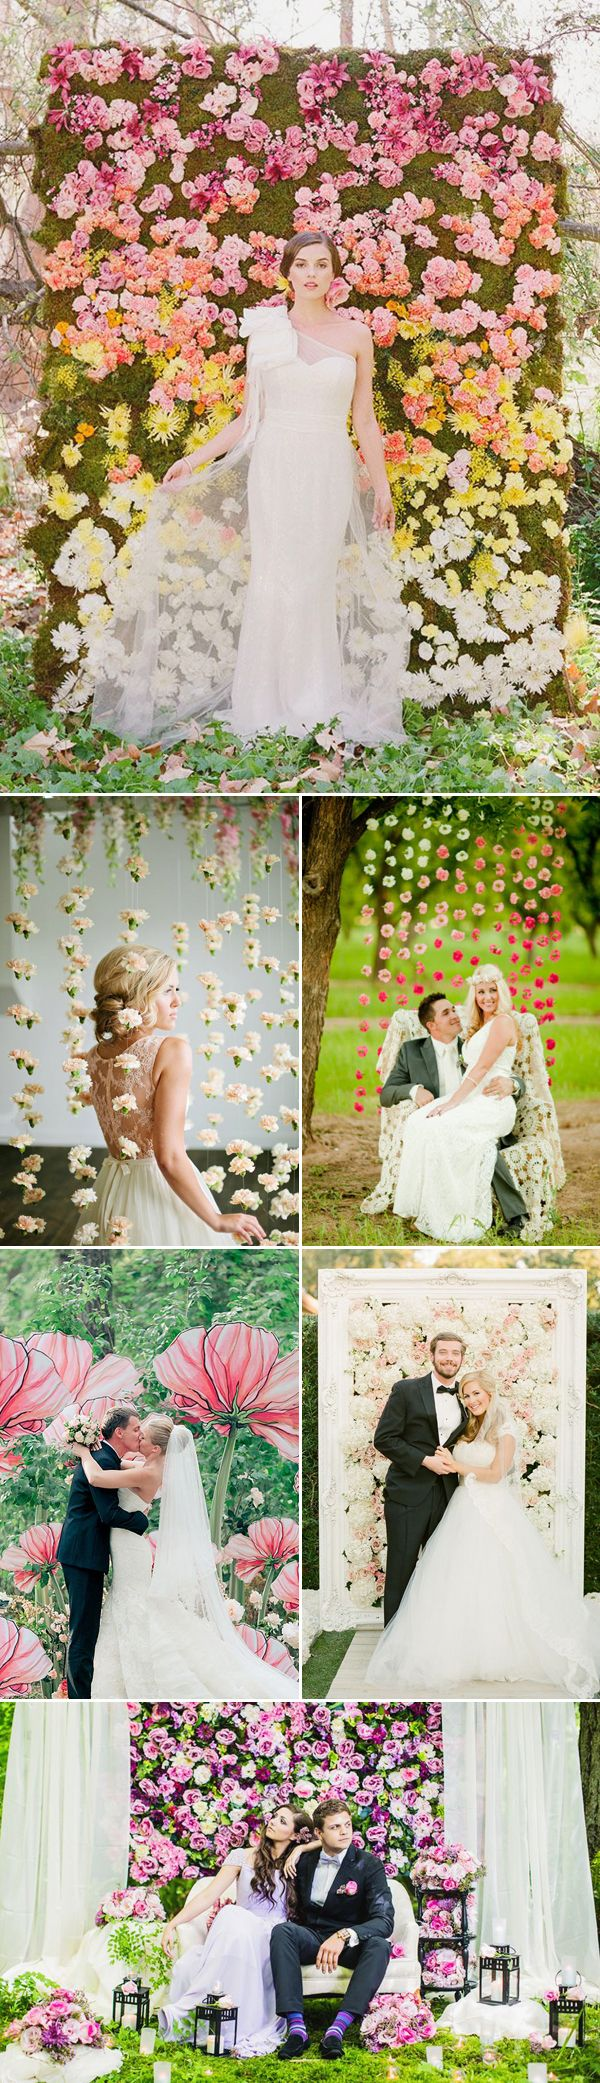 Oh Snap! 45 Creative Wedding Photo Backdrops - Floral Backdrop!